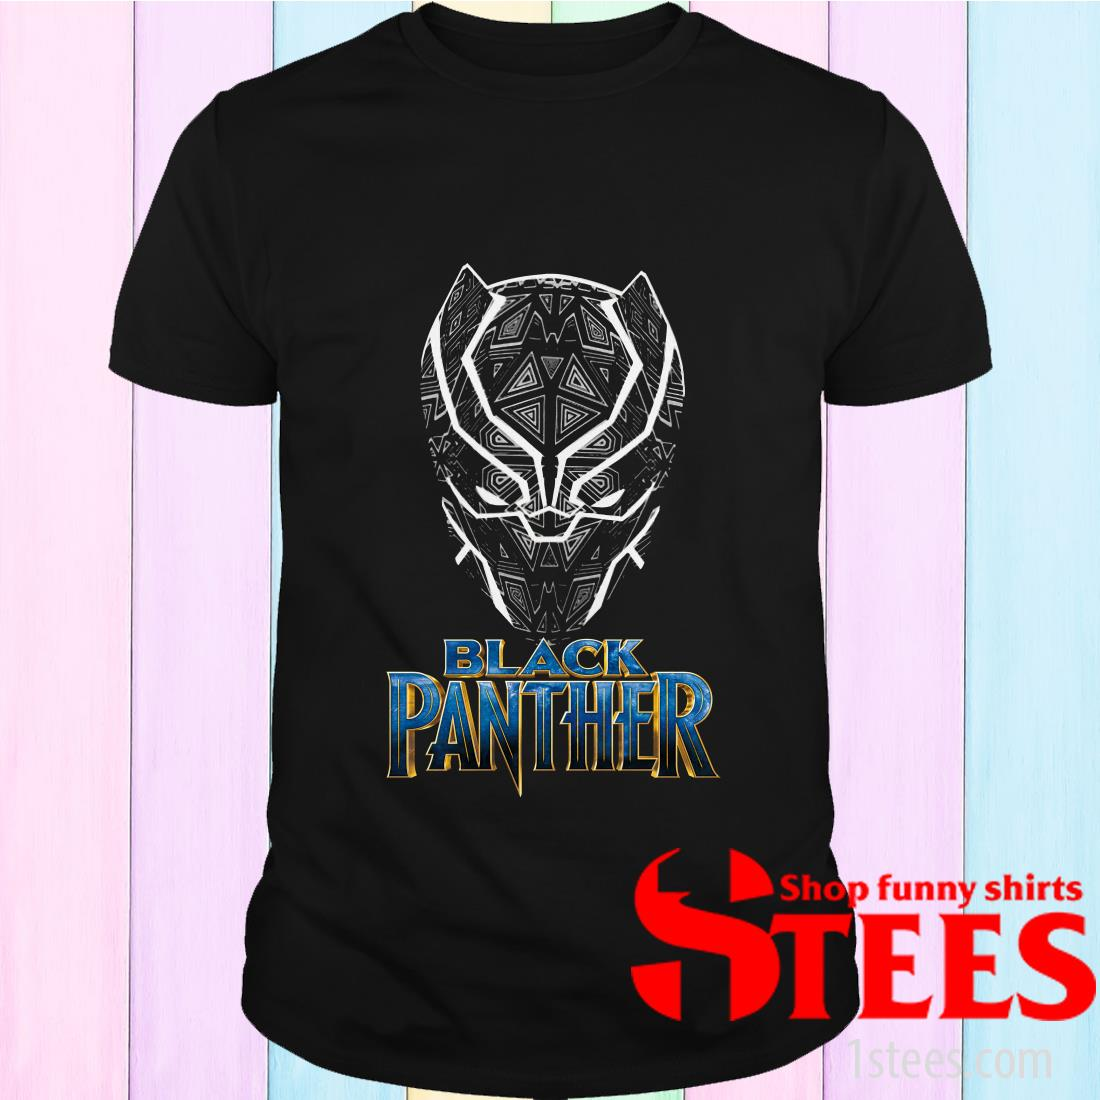 Black Panther King Chadwick Boseman 1977 2020 T-Shirt